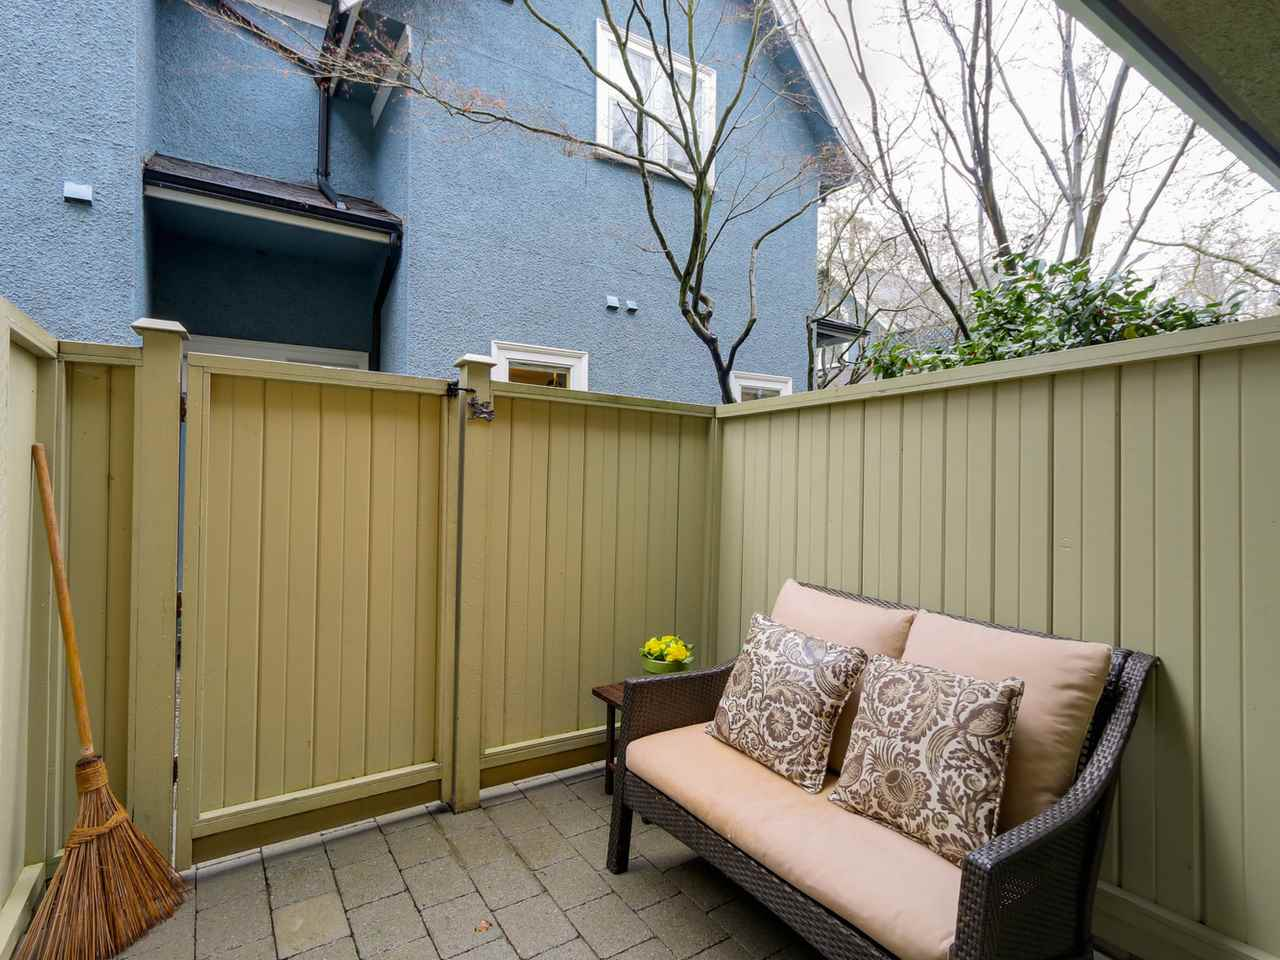 Photo 33: 183 W 13TH Avenue in Vancouver: Mount Pleasant VW Townhouse for sale (Vancouver West)  : MLS® # R2041356